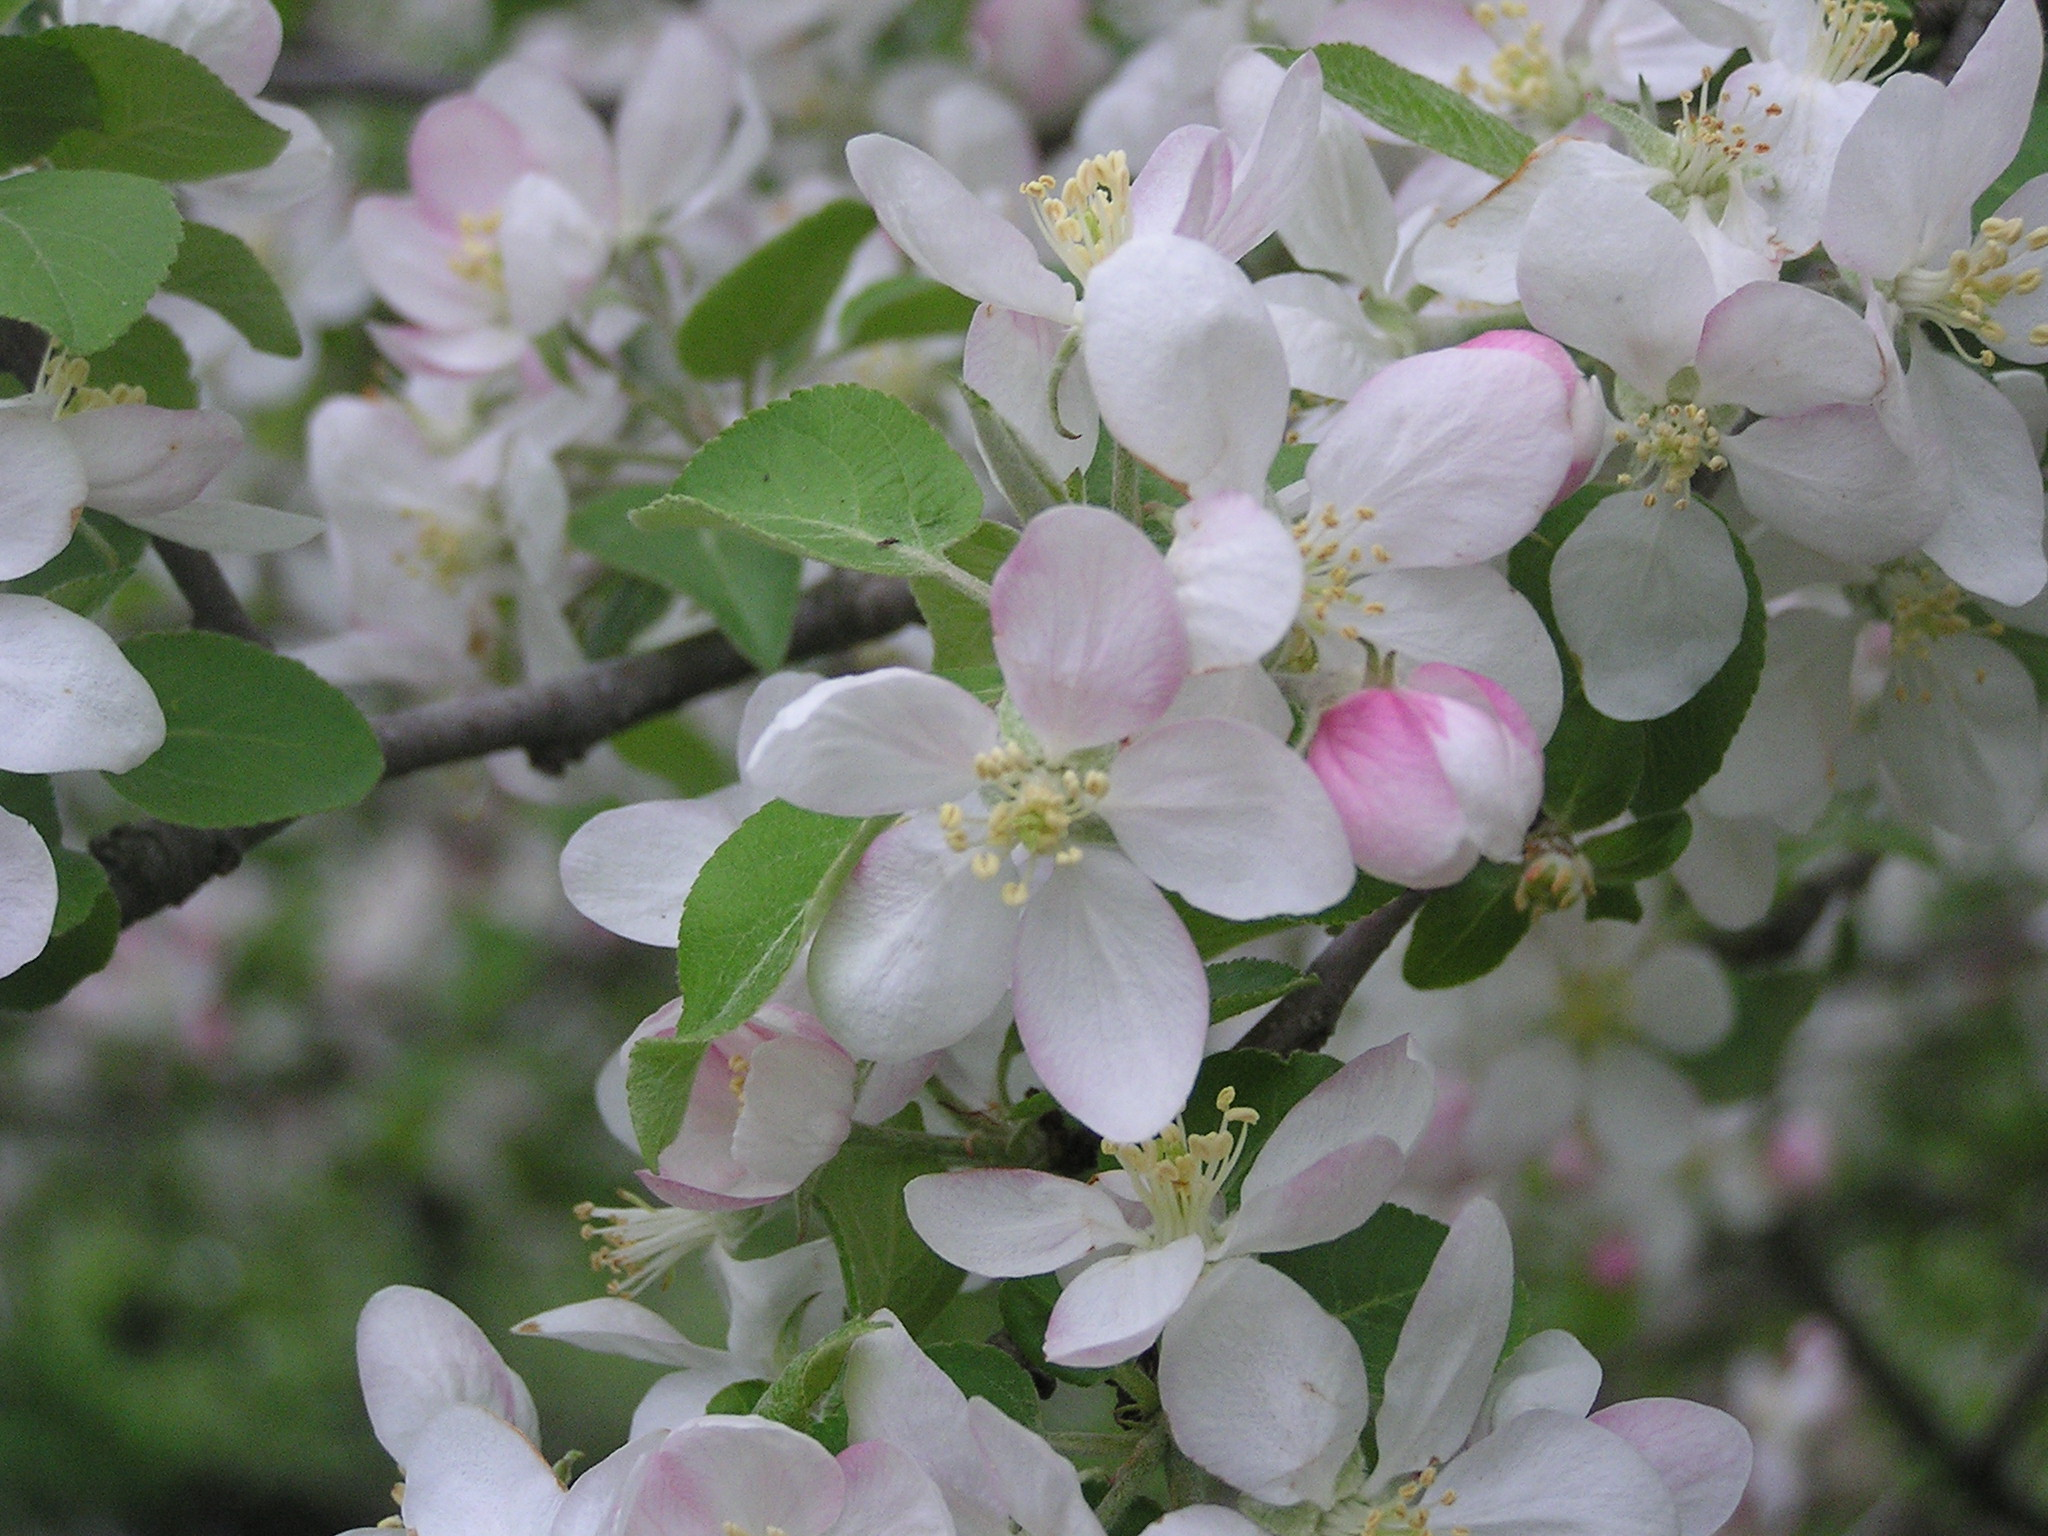 Leif S Favorite Mid To Late Spring Flowering Trees Shrubs